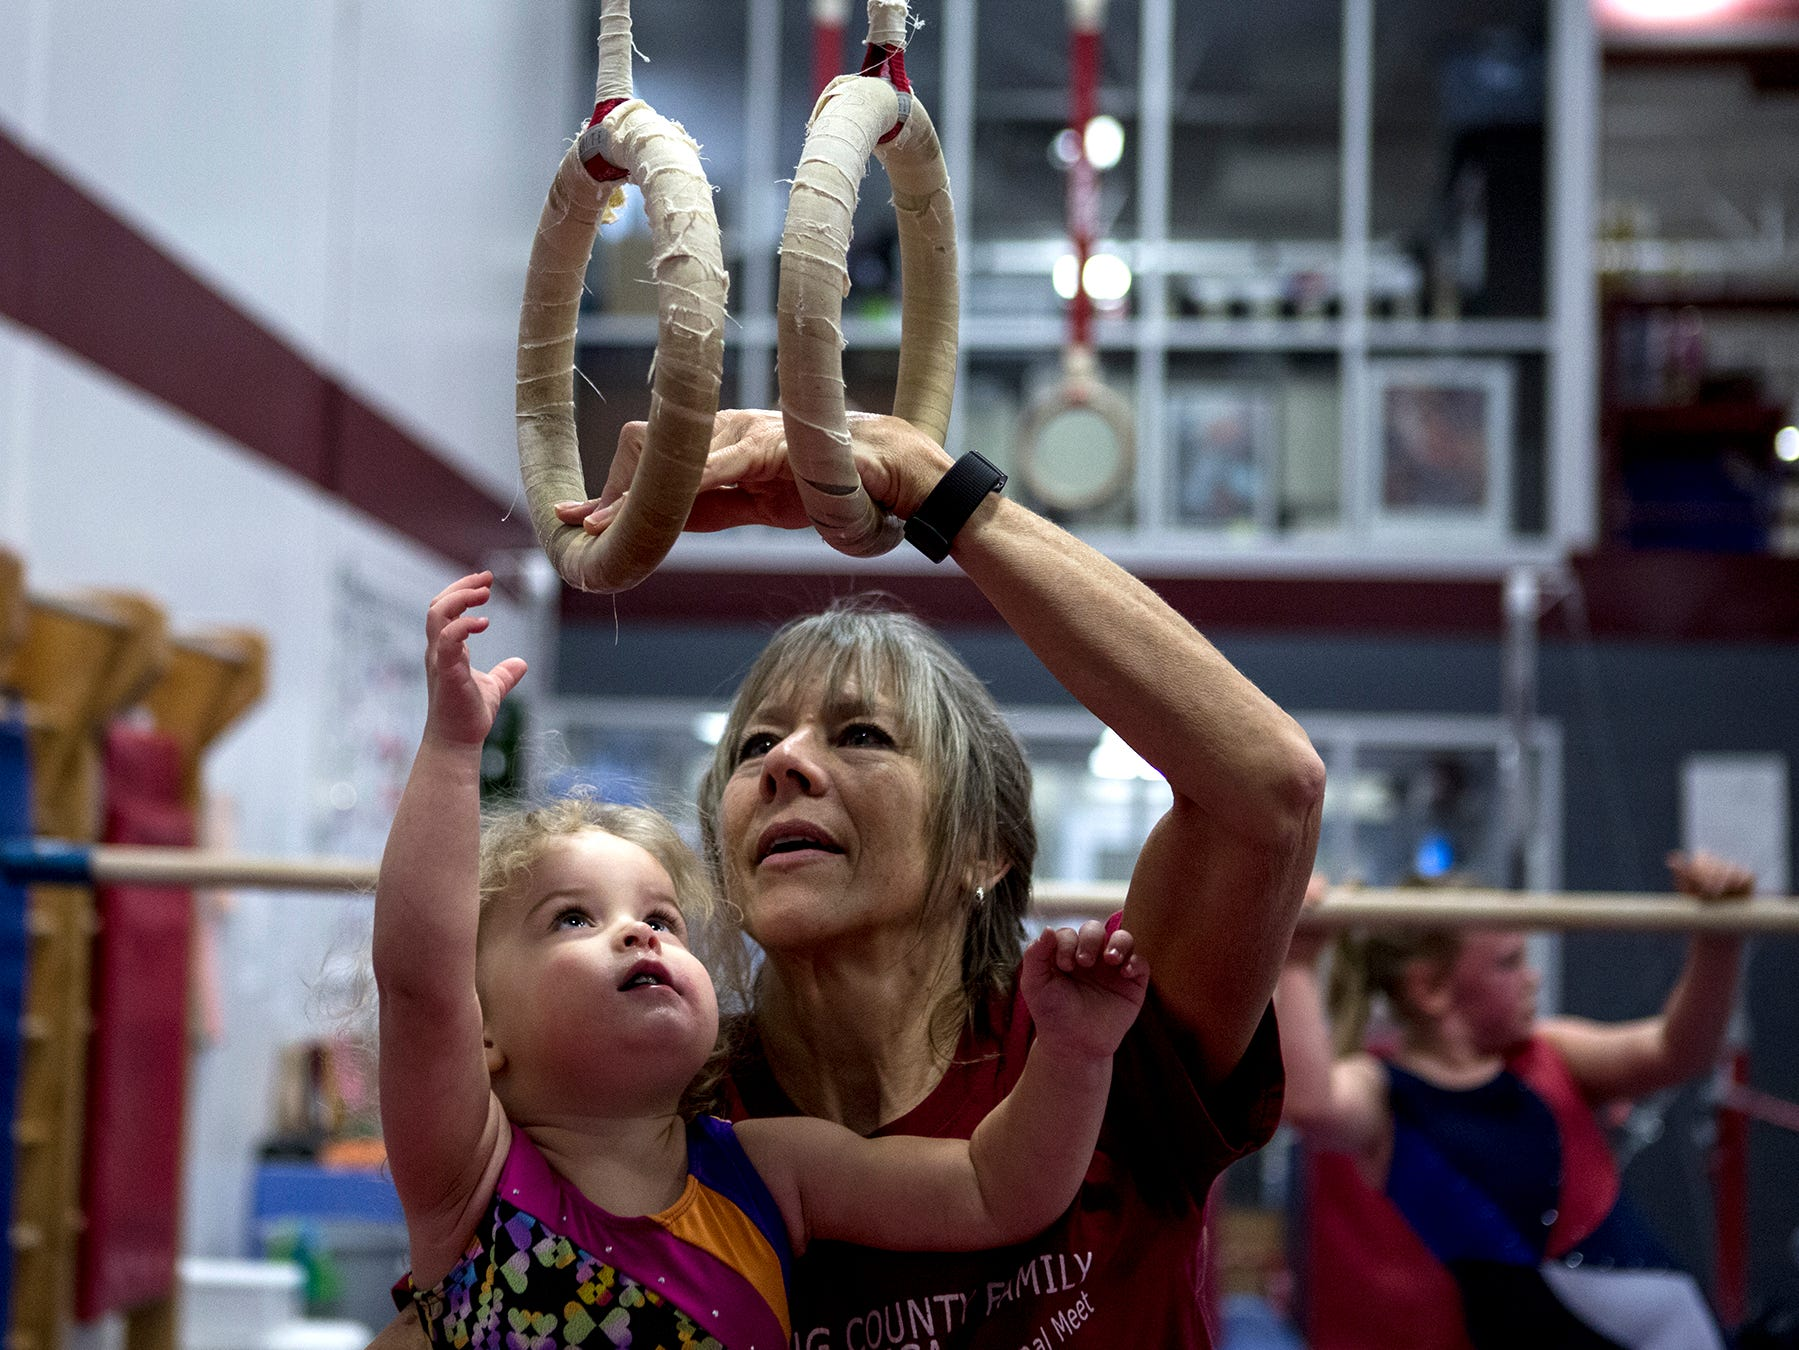 Jeanne Reid helps 2 year-old Eva Swick grab onto the rings and swing at a preschool open gymnastics class at the Licking County YMCA. The YMCA will be holding a second preschool open gym Friday January 4th in the Mitchell Center. Prices are $15 for members and $25 for nonmembers, ages 3-6.